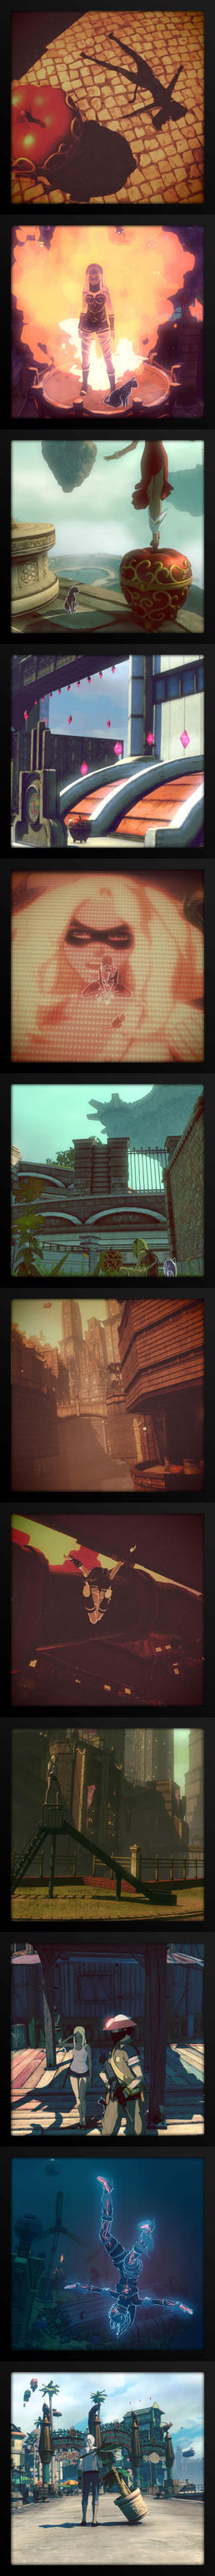 Gravity Rush 2 and the leisurely photographer by ZedEdge